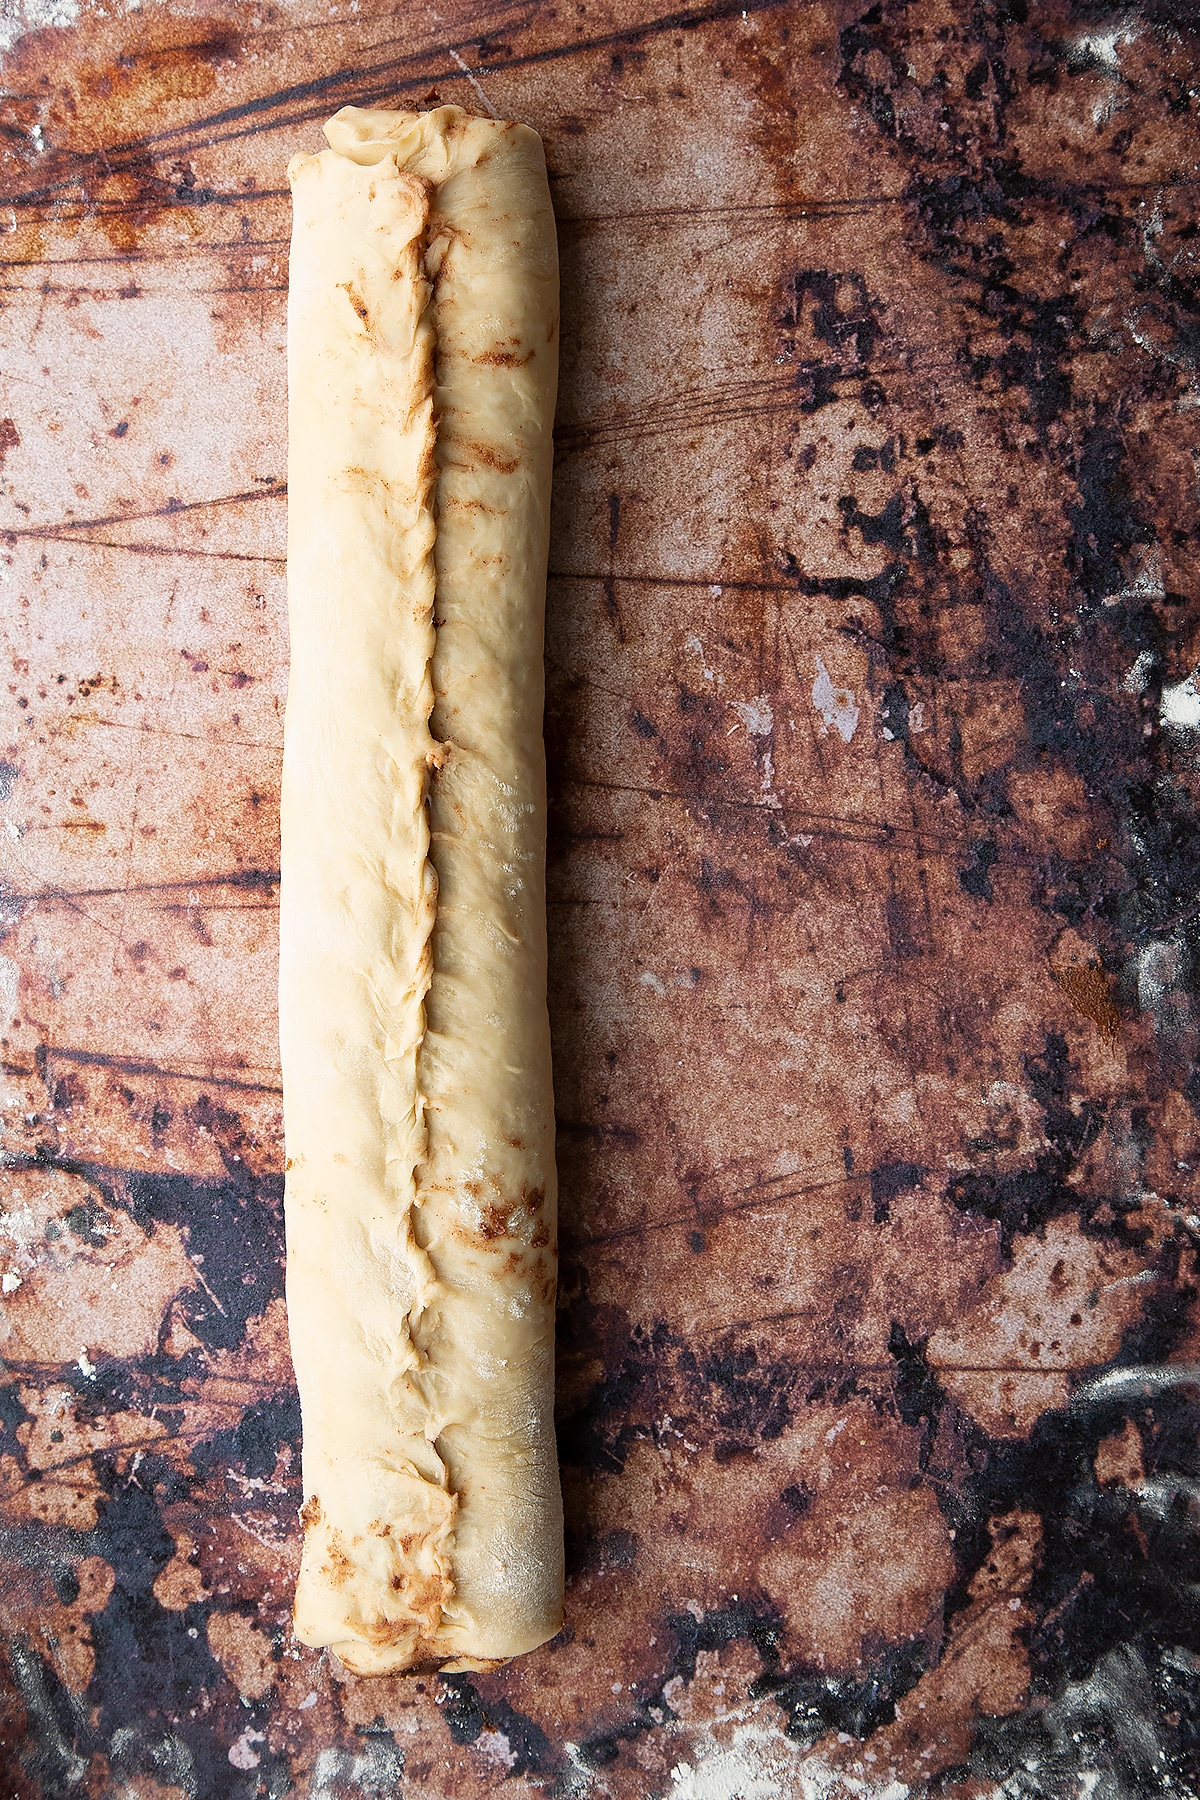 Overhead shot of dough layered with chocolate spread and rolled up into a sausage shape